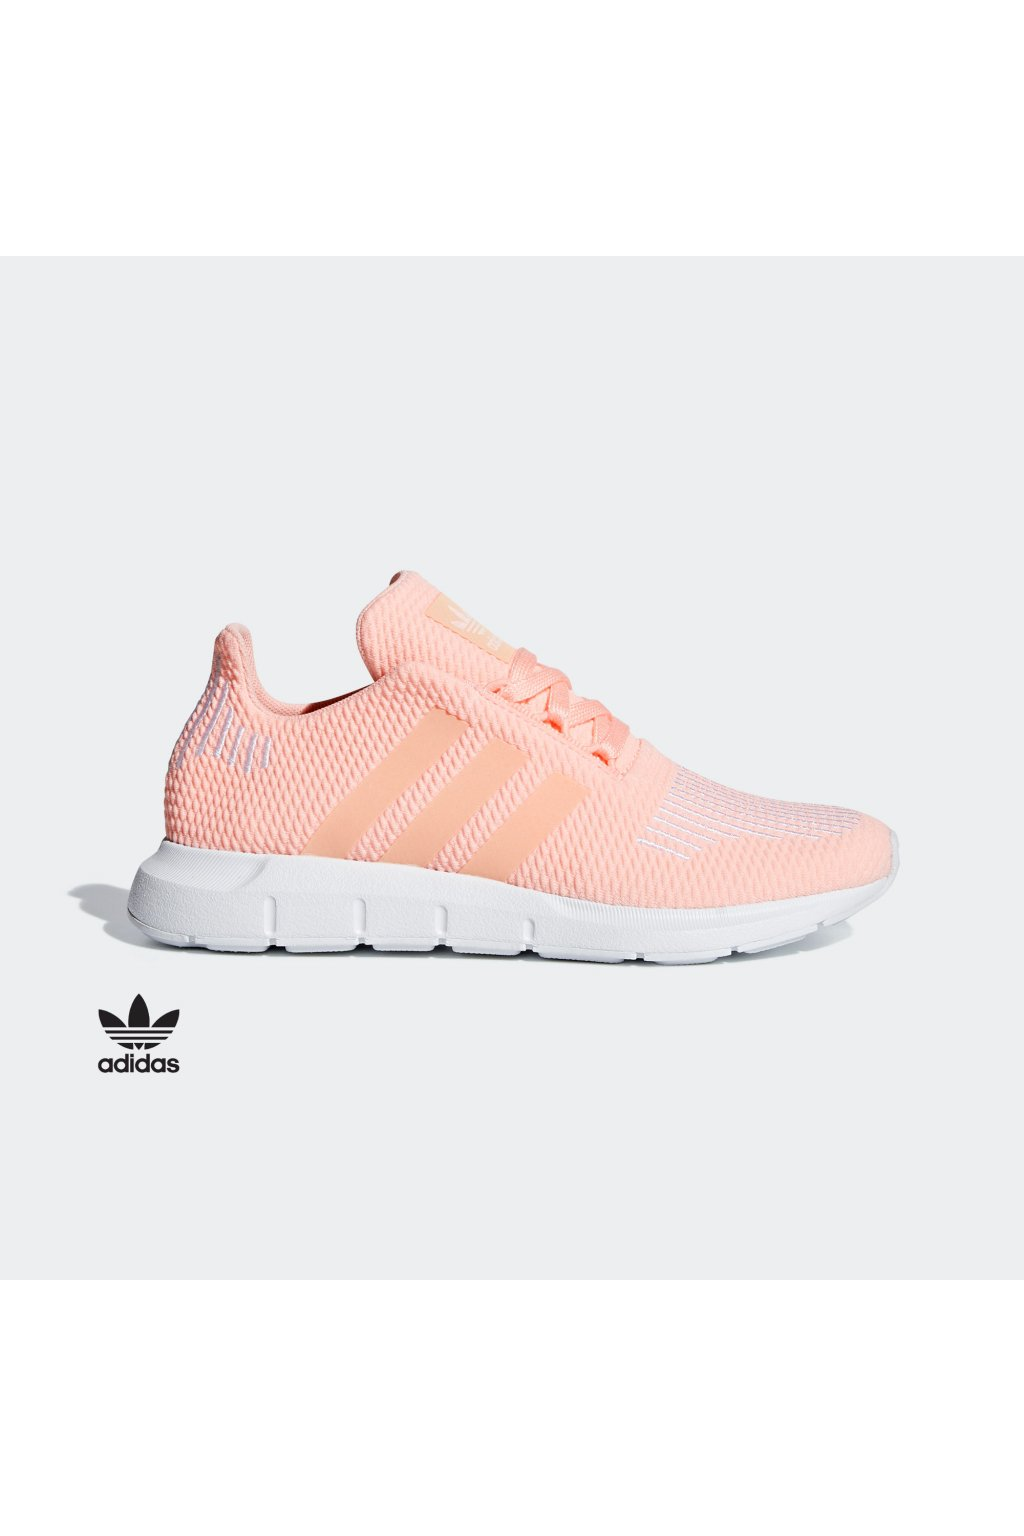 cg6910 adidas swift run j (1)